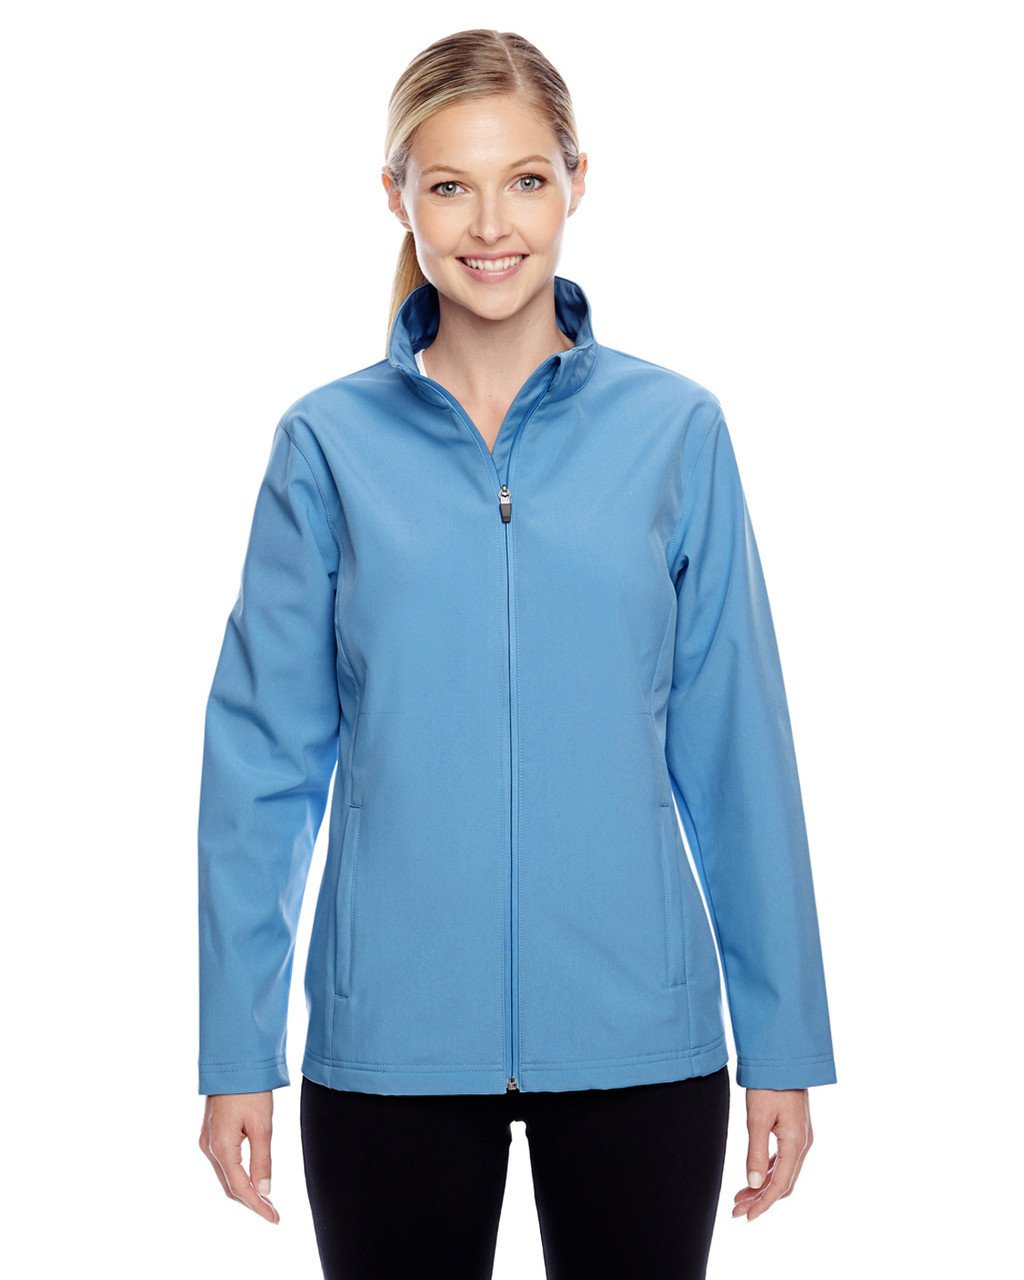 Light Blue - TT80W Team 365 Leader Soft Shell Jacket | BlankClothing.ca